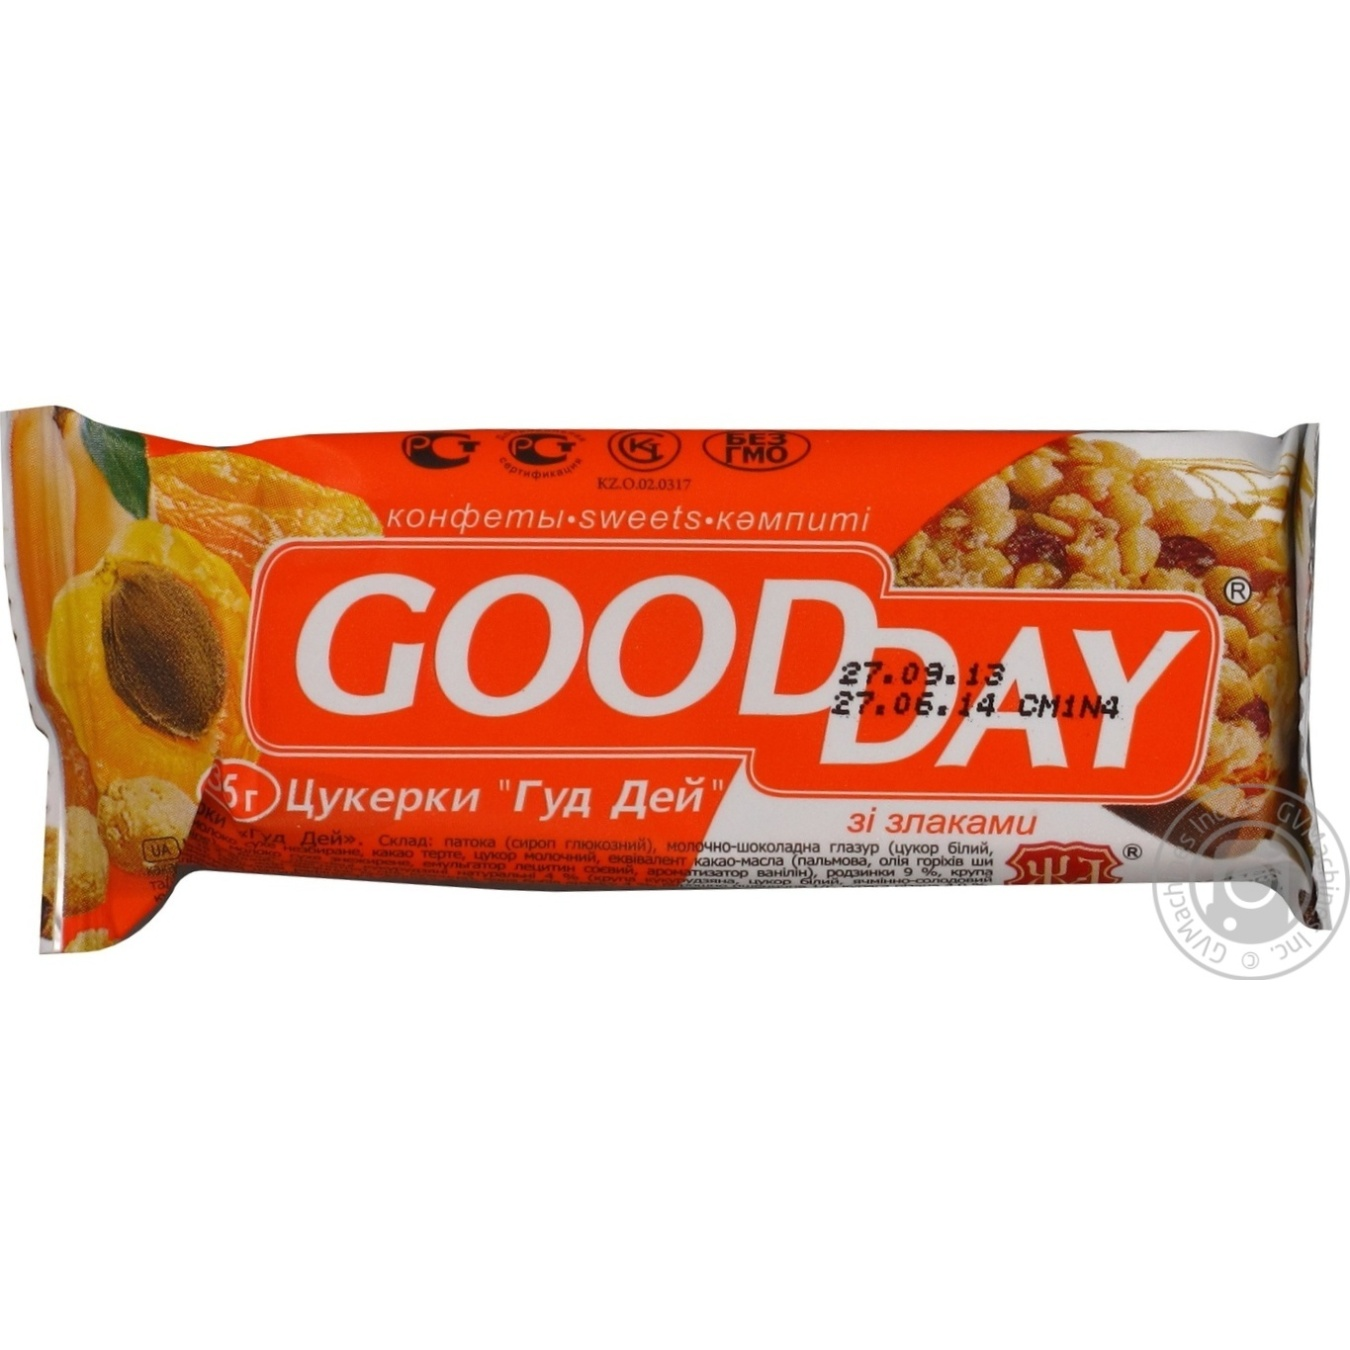 candy bar zhytomurski lasoschi good day 35g ukraine sweets